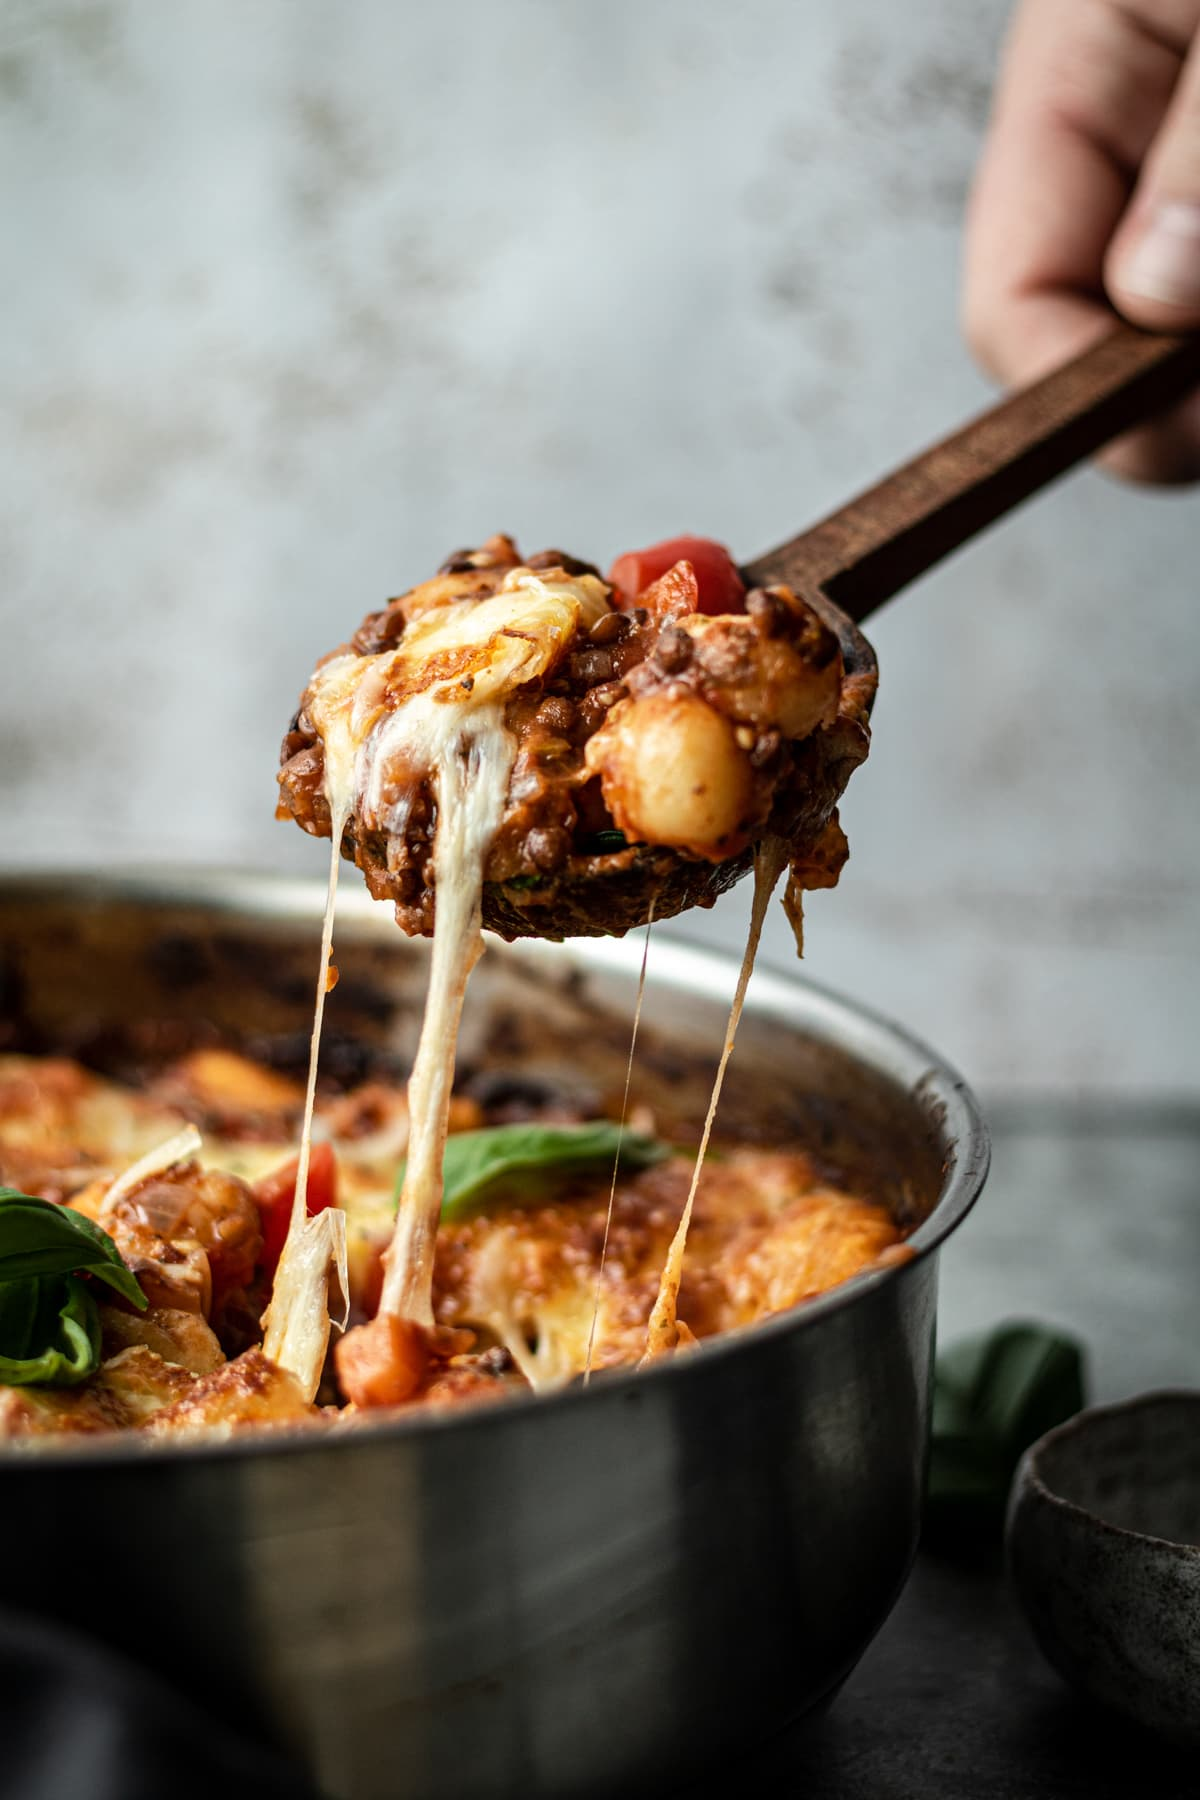 A spoonful of gnocchi bolognese being lifted from pan with cheese